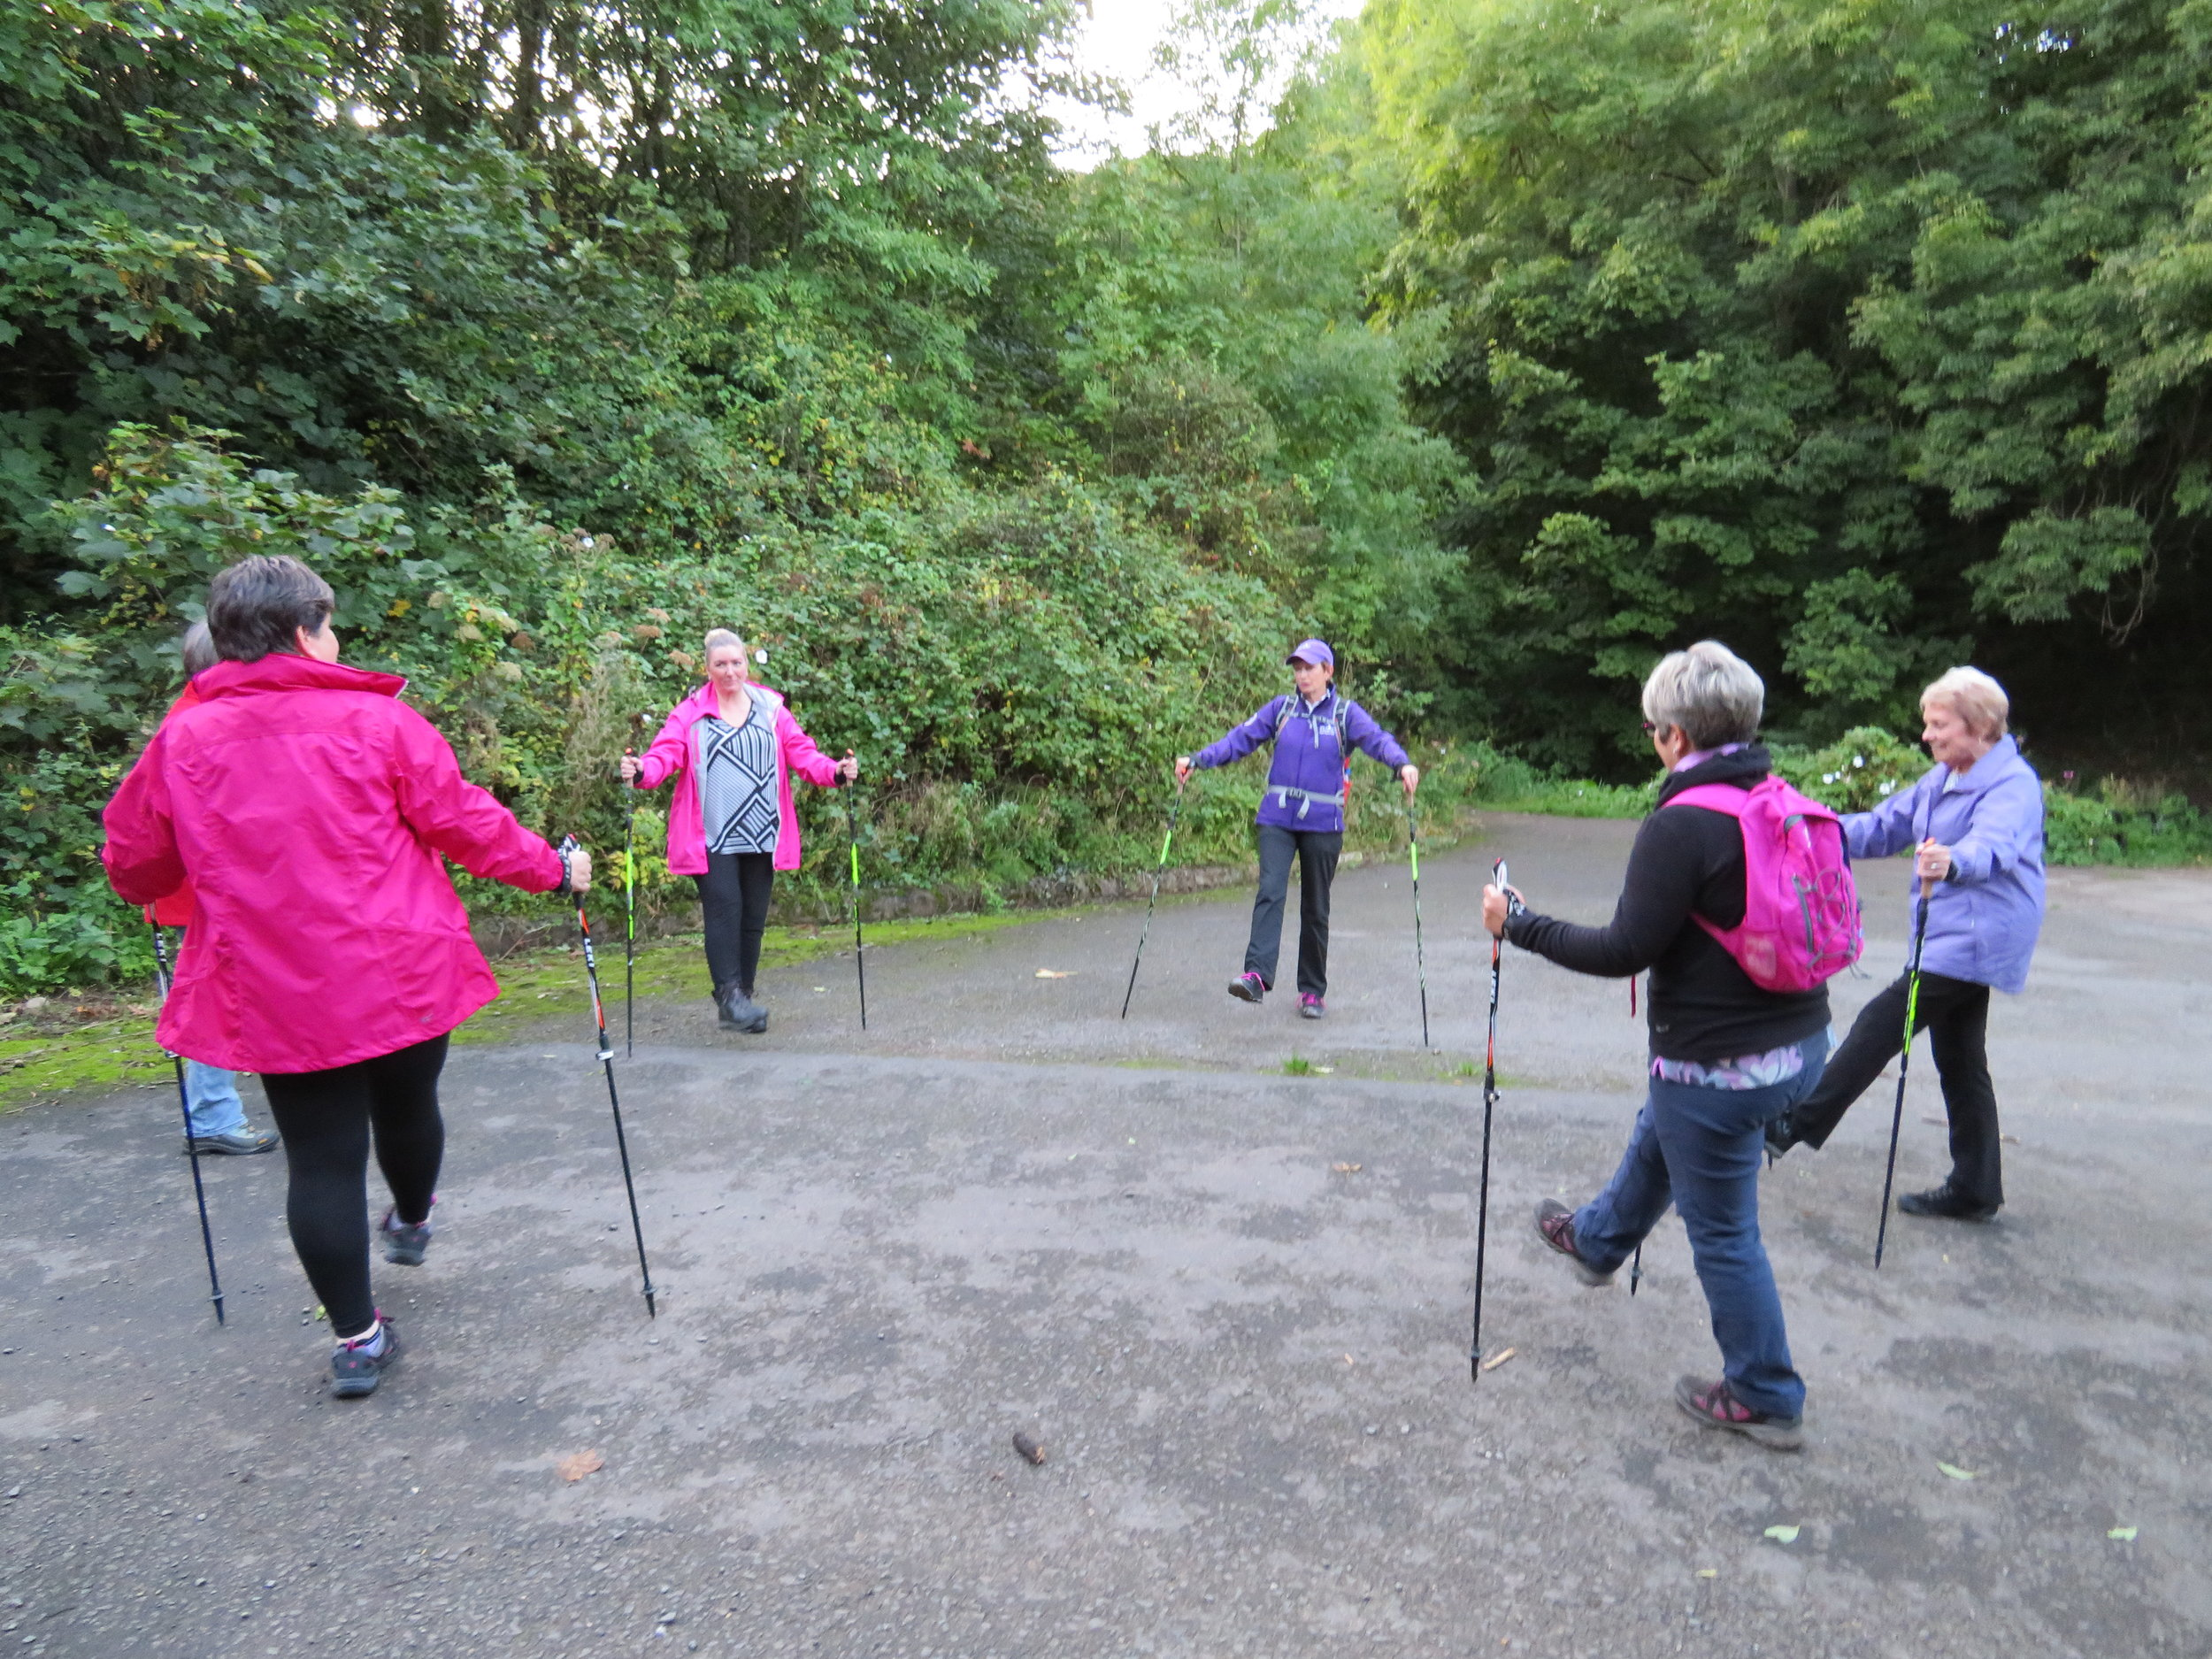 Five ladies wearing pink and purple jackets in a circle with Nordic Walking poles taking part in a workout on tarmac overlooking a green forest